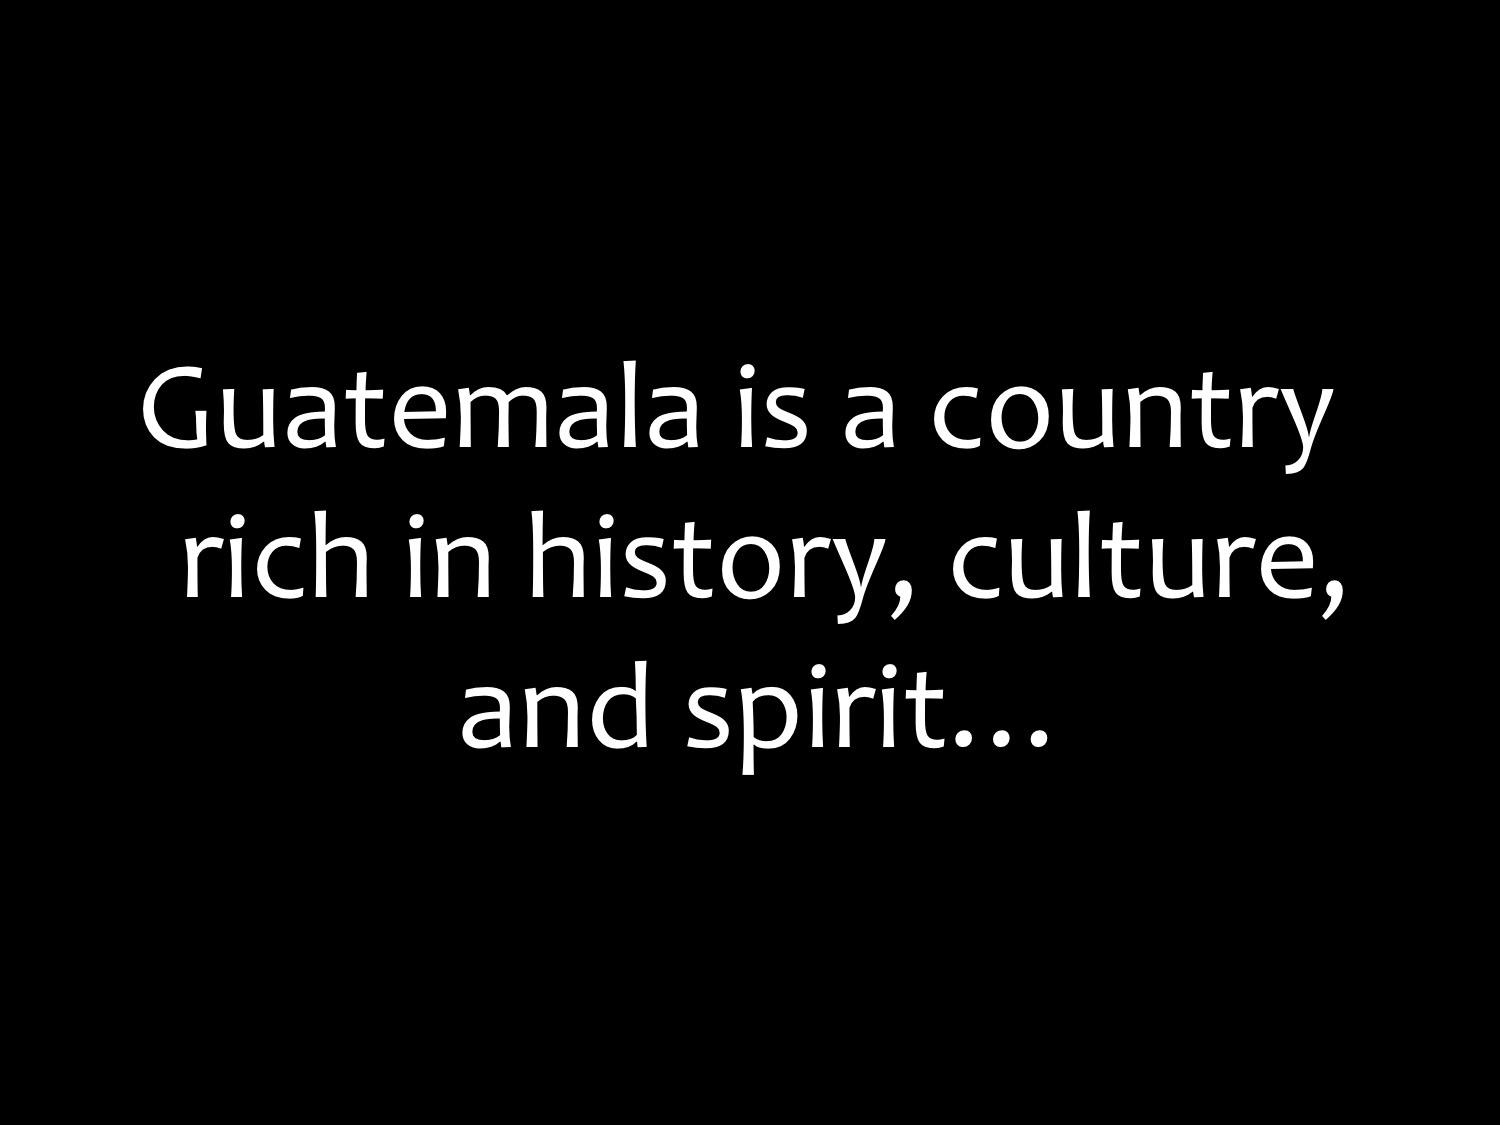 Media - About Guatemala